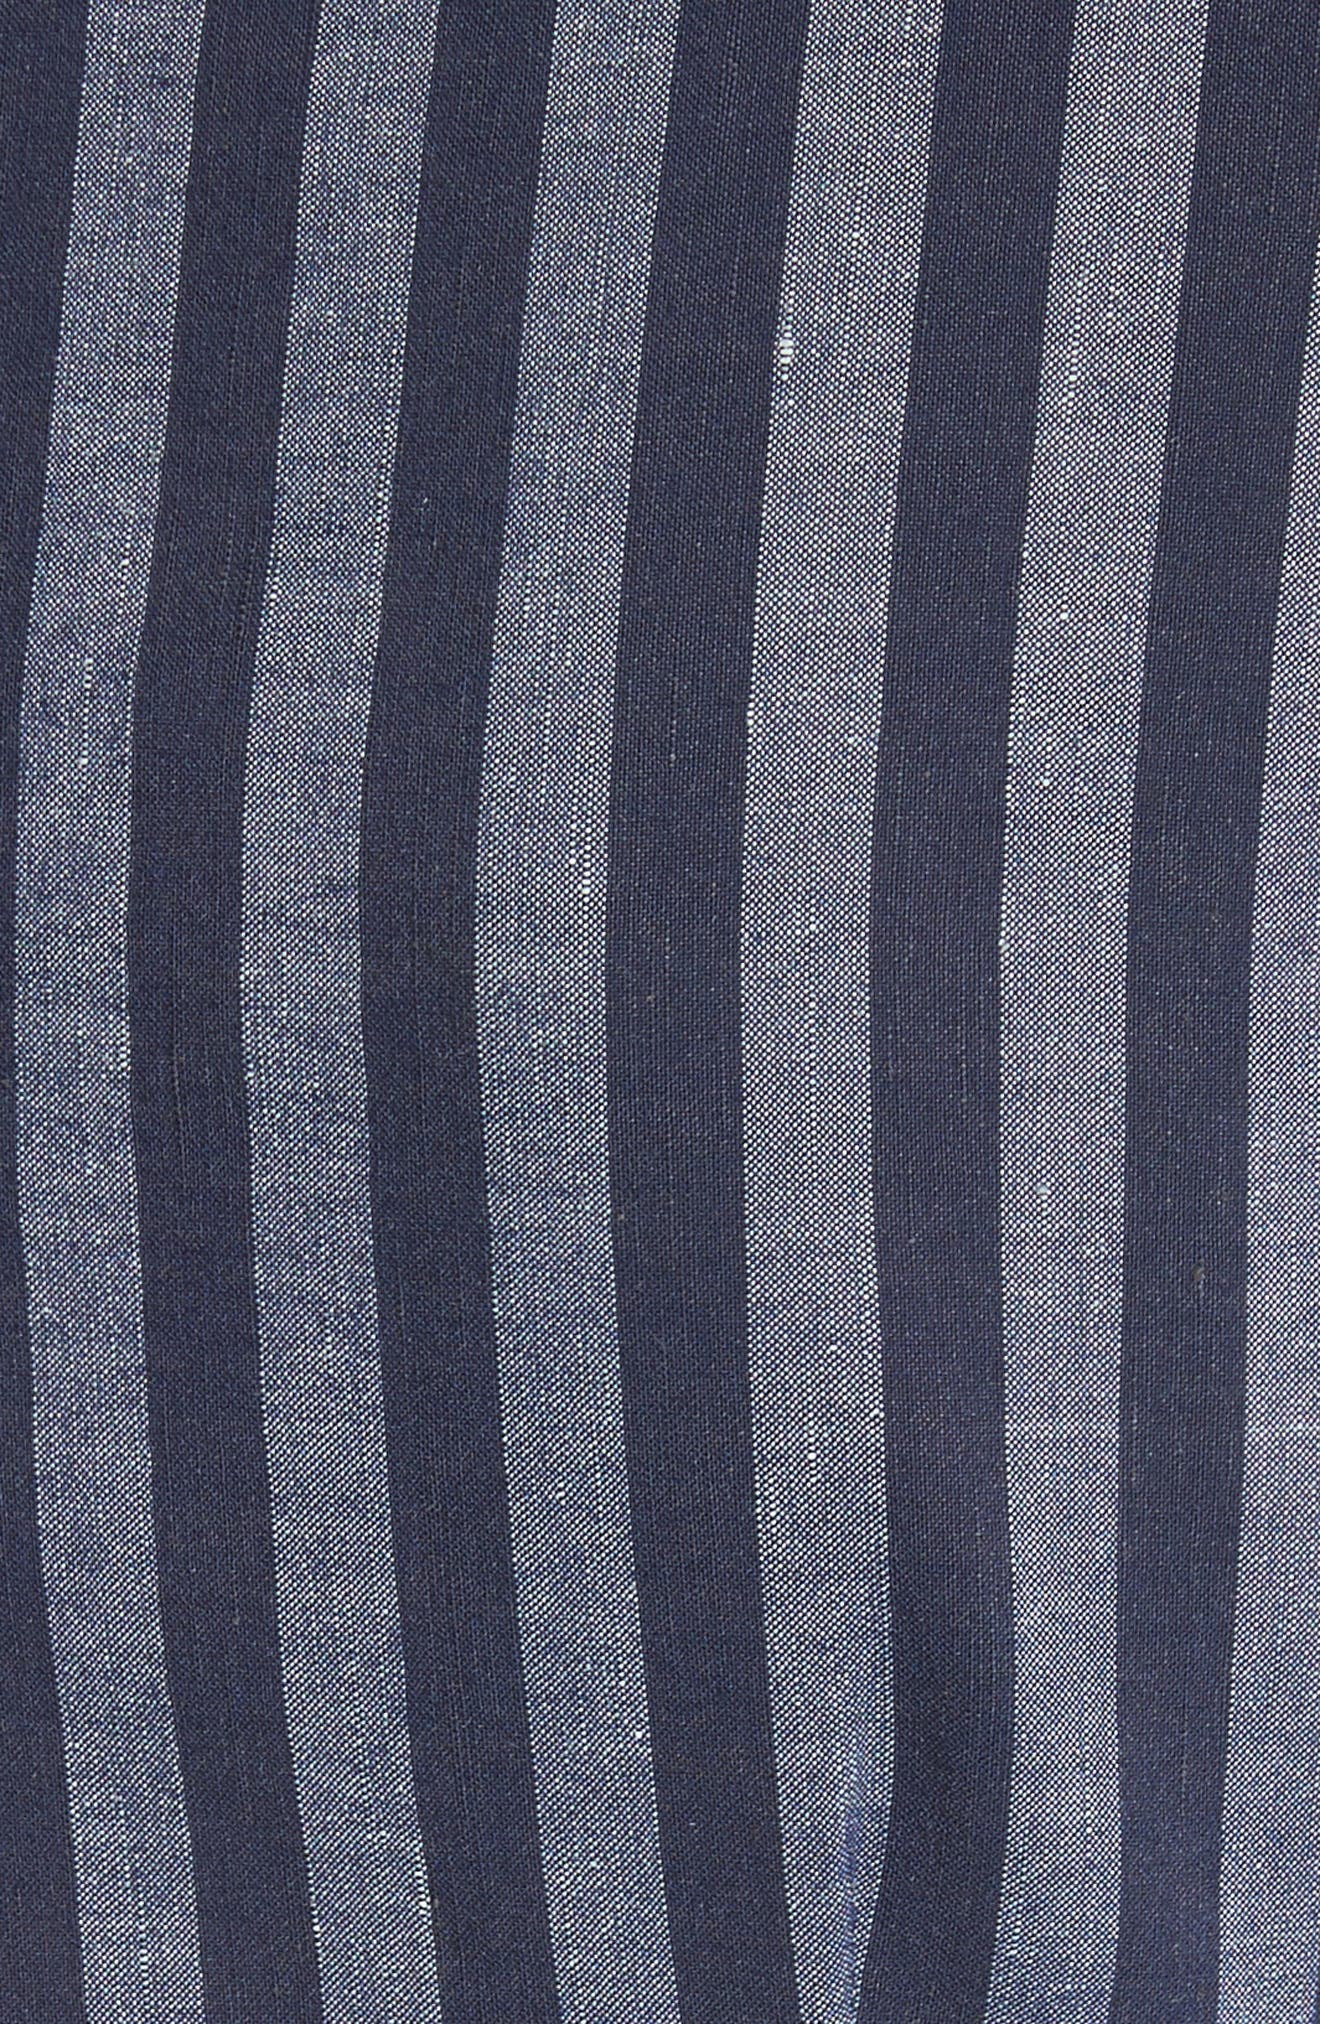 Directional Stripe A-Line Dress,                             Alternate thumbnail 5, color,                             India Ink